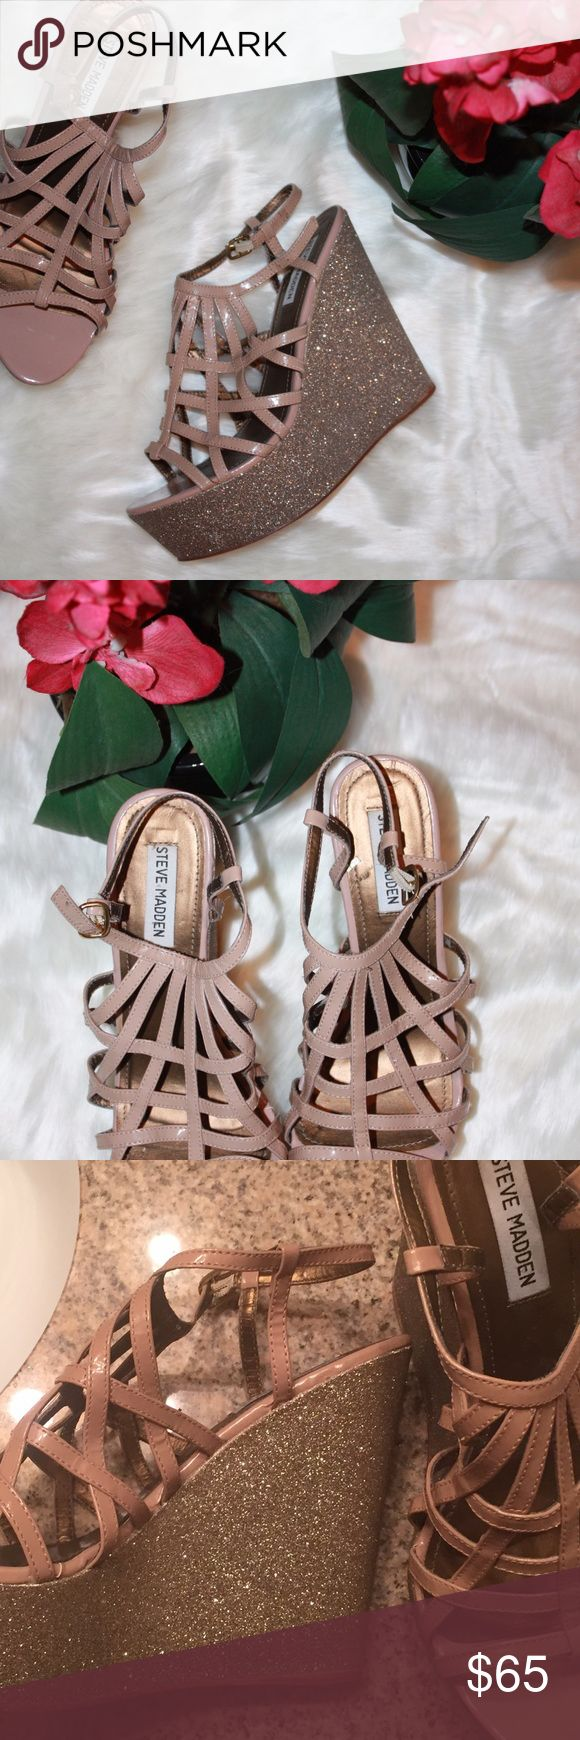 Steve Madden cage top nude wowww wedges Glitter and nude strappy wedge size ten. I can't wear tall heels due to my ankle being broken too many times.  Stickers still on the bottom!  Can't find these anywhere anymore. Great condition! Authentic! Steve Madden Shoes Wedges